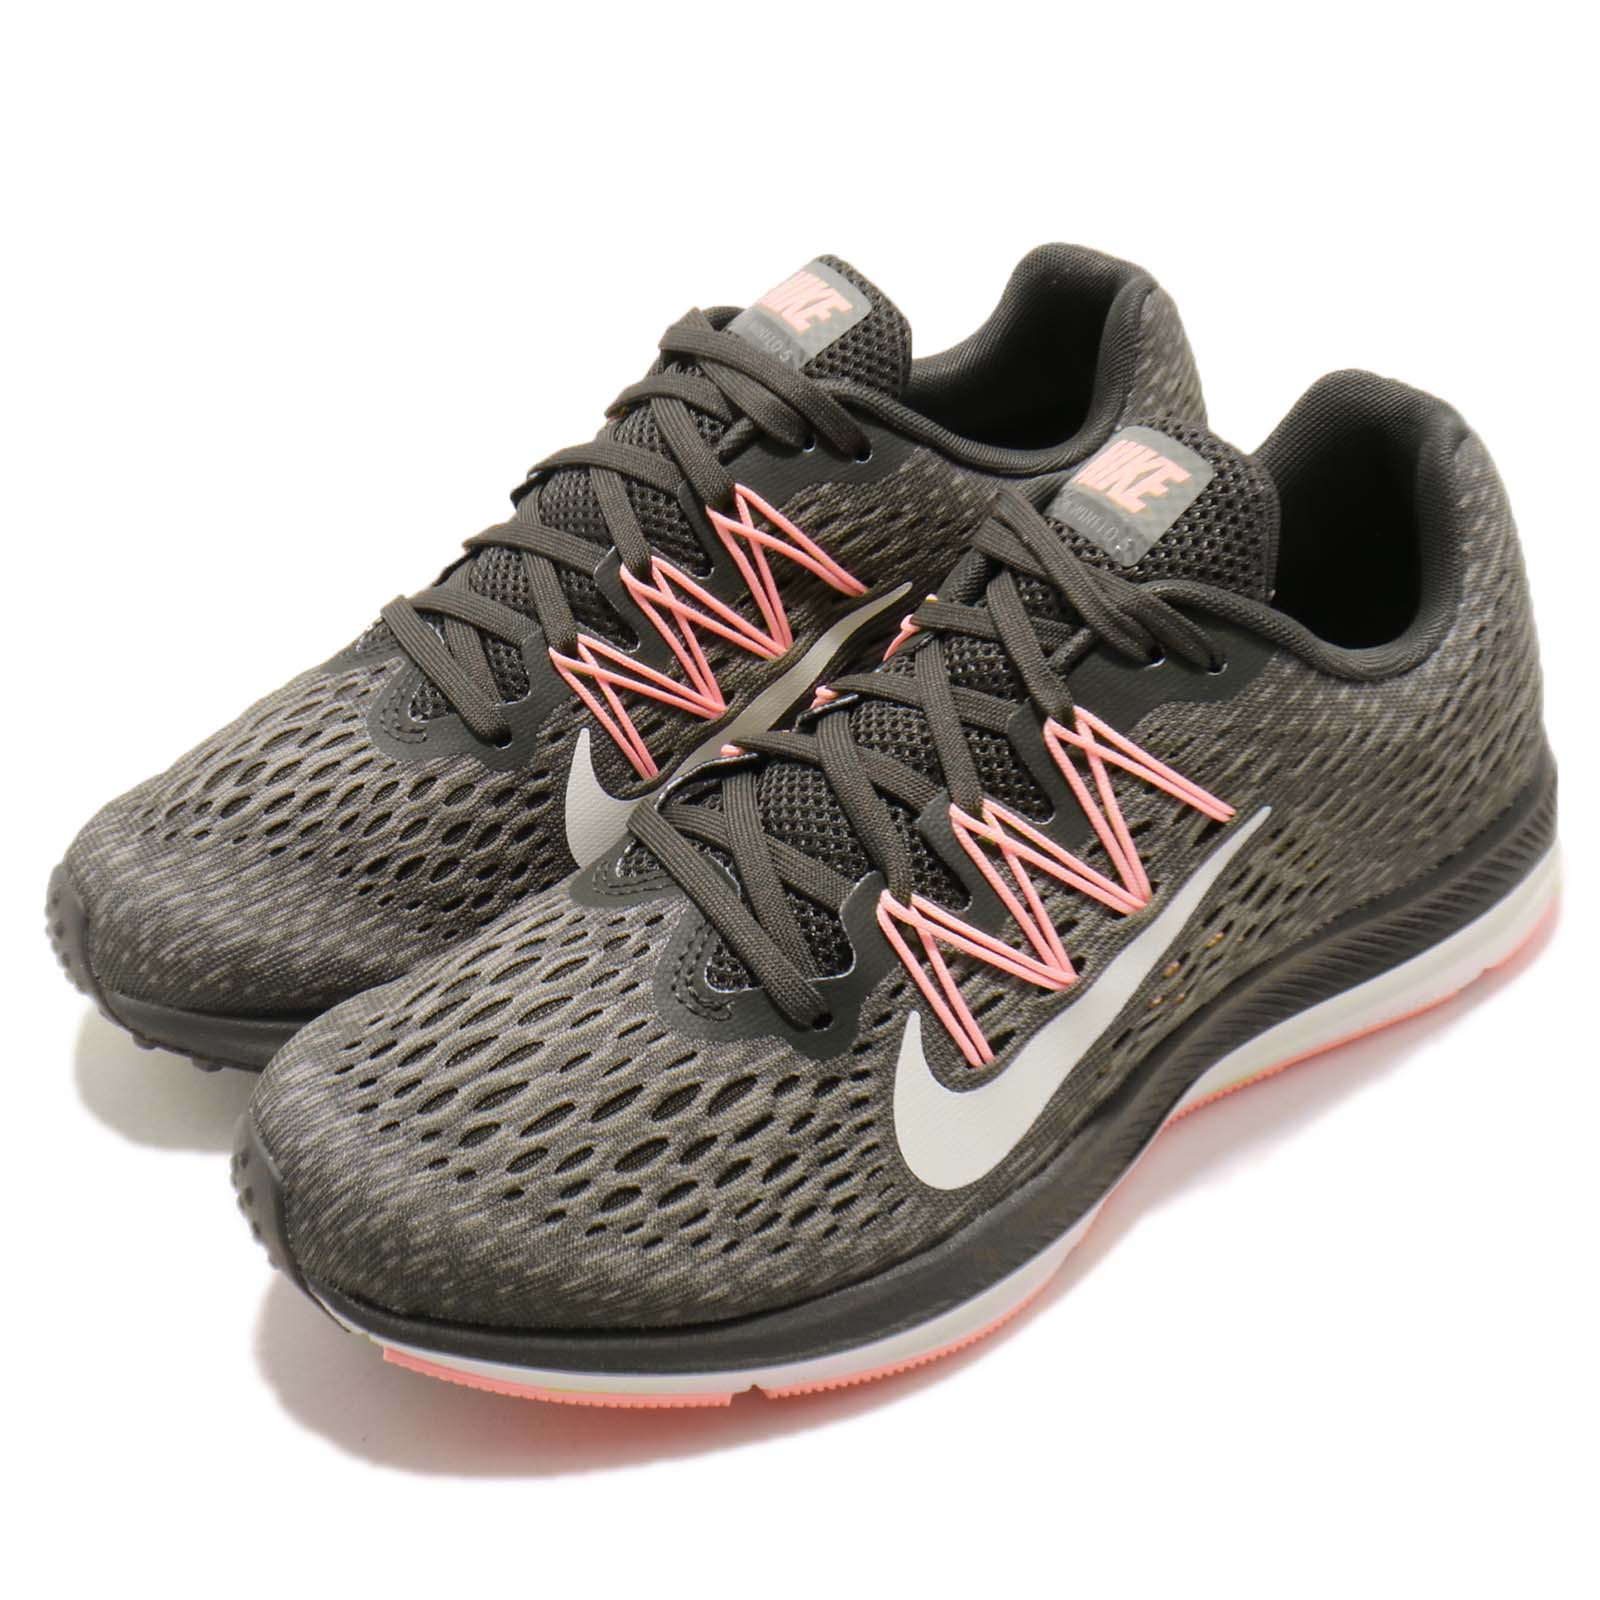 4891b68fa59 Details about Nike Wmns Zoom Winflo 5 V Grey Pink White Women Running Shoes  Sneaker AA7414-004